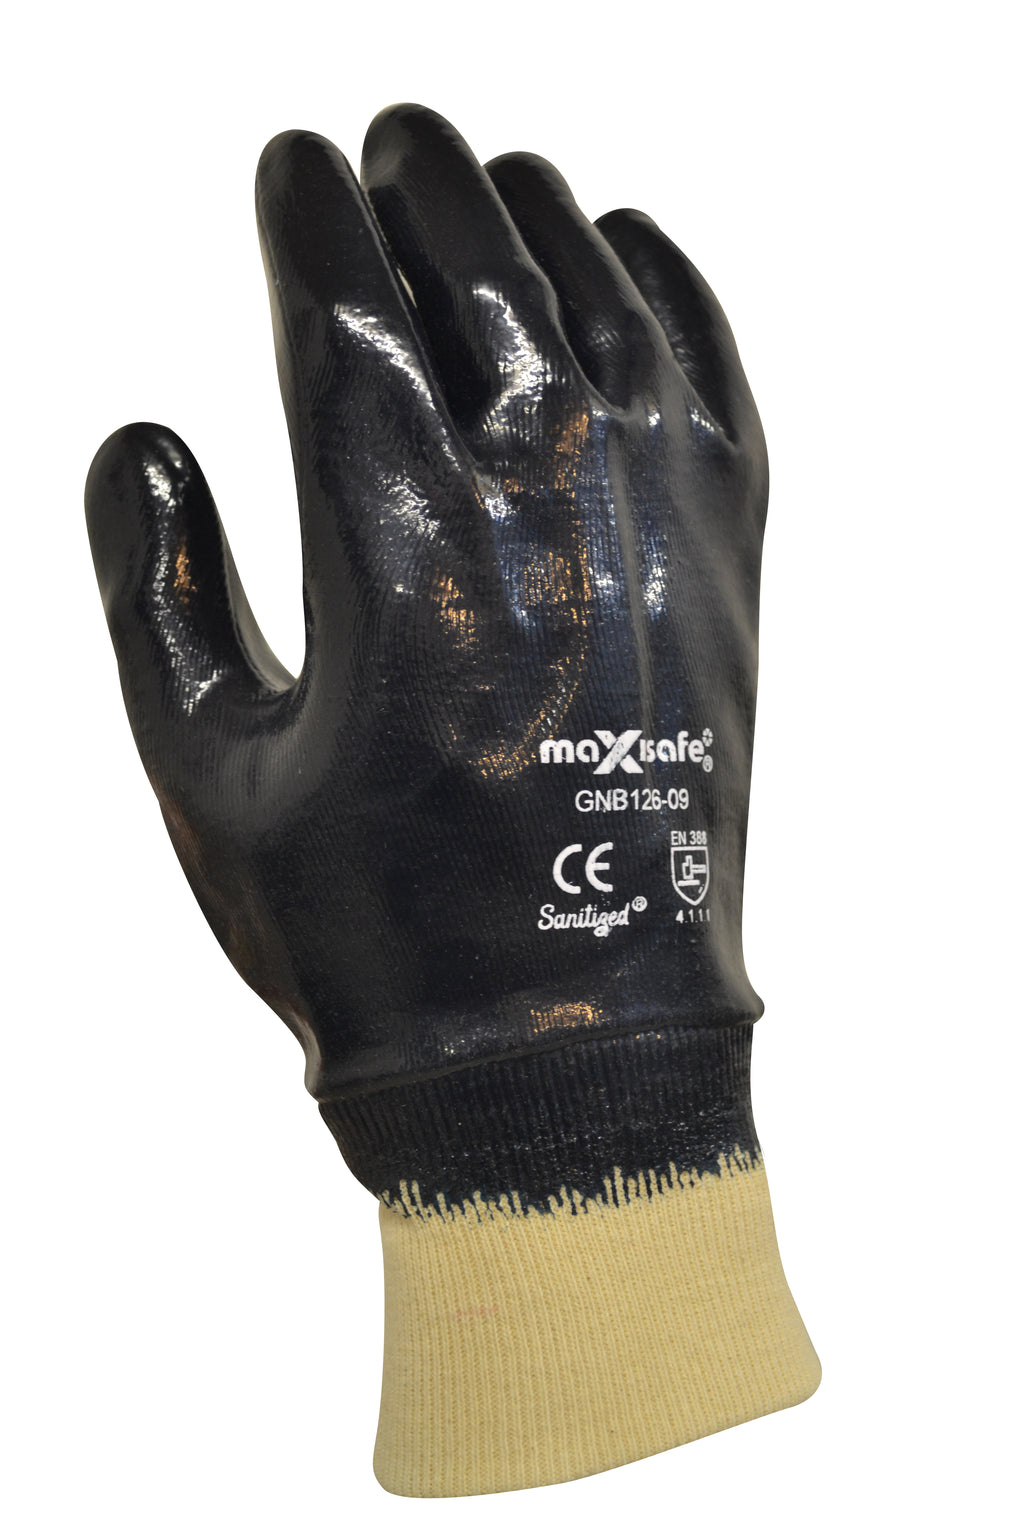 Blue Knight Fully Coated Nitrile Glove